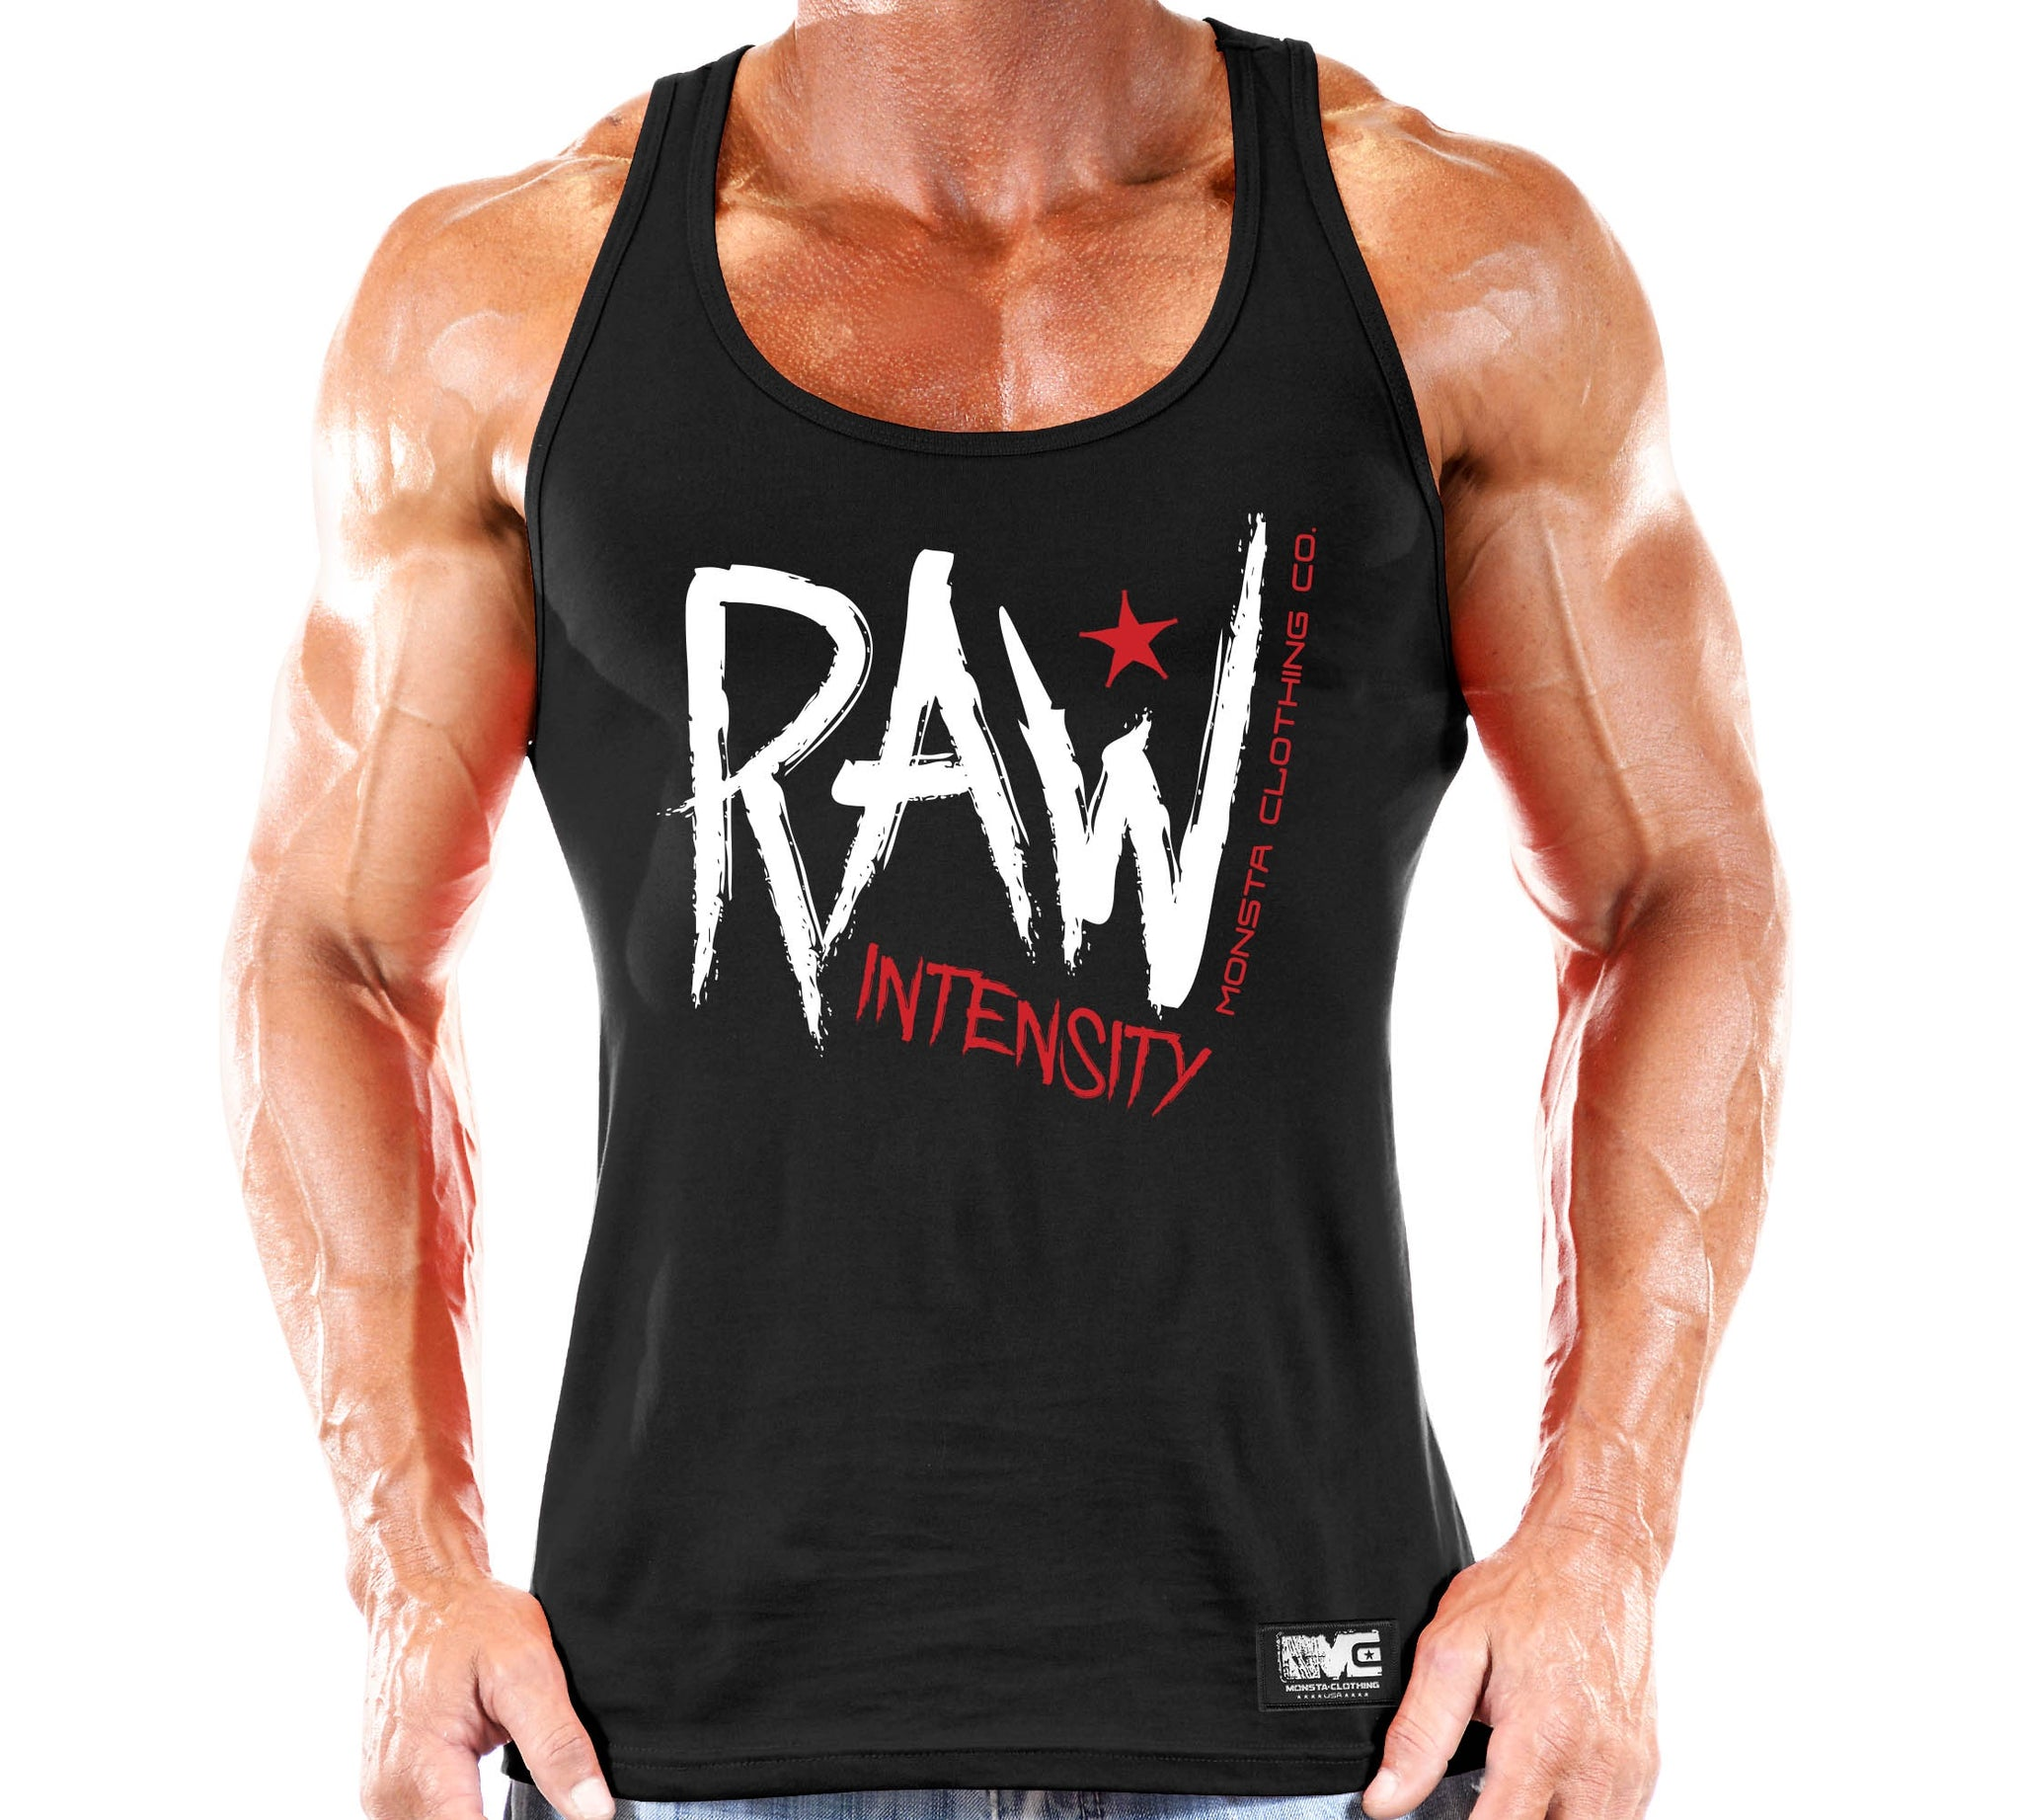 RAW INTENSITY TANK WHITE TRIM - Monsta Clothing Australia